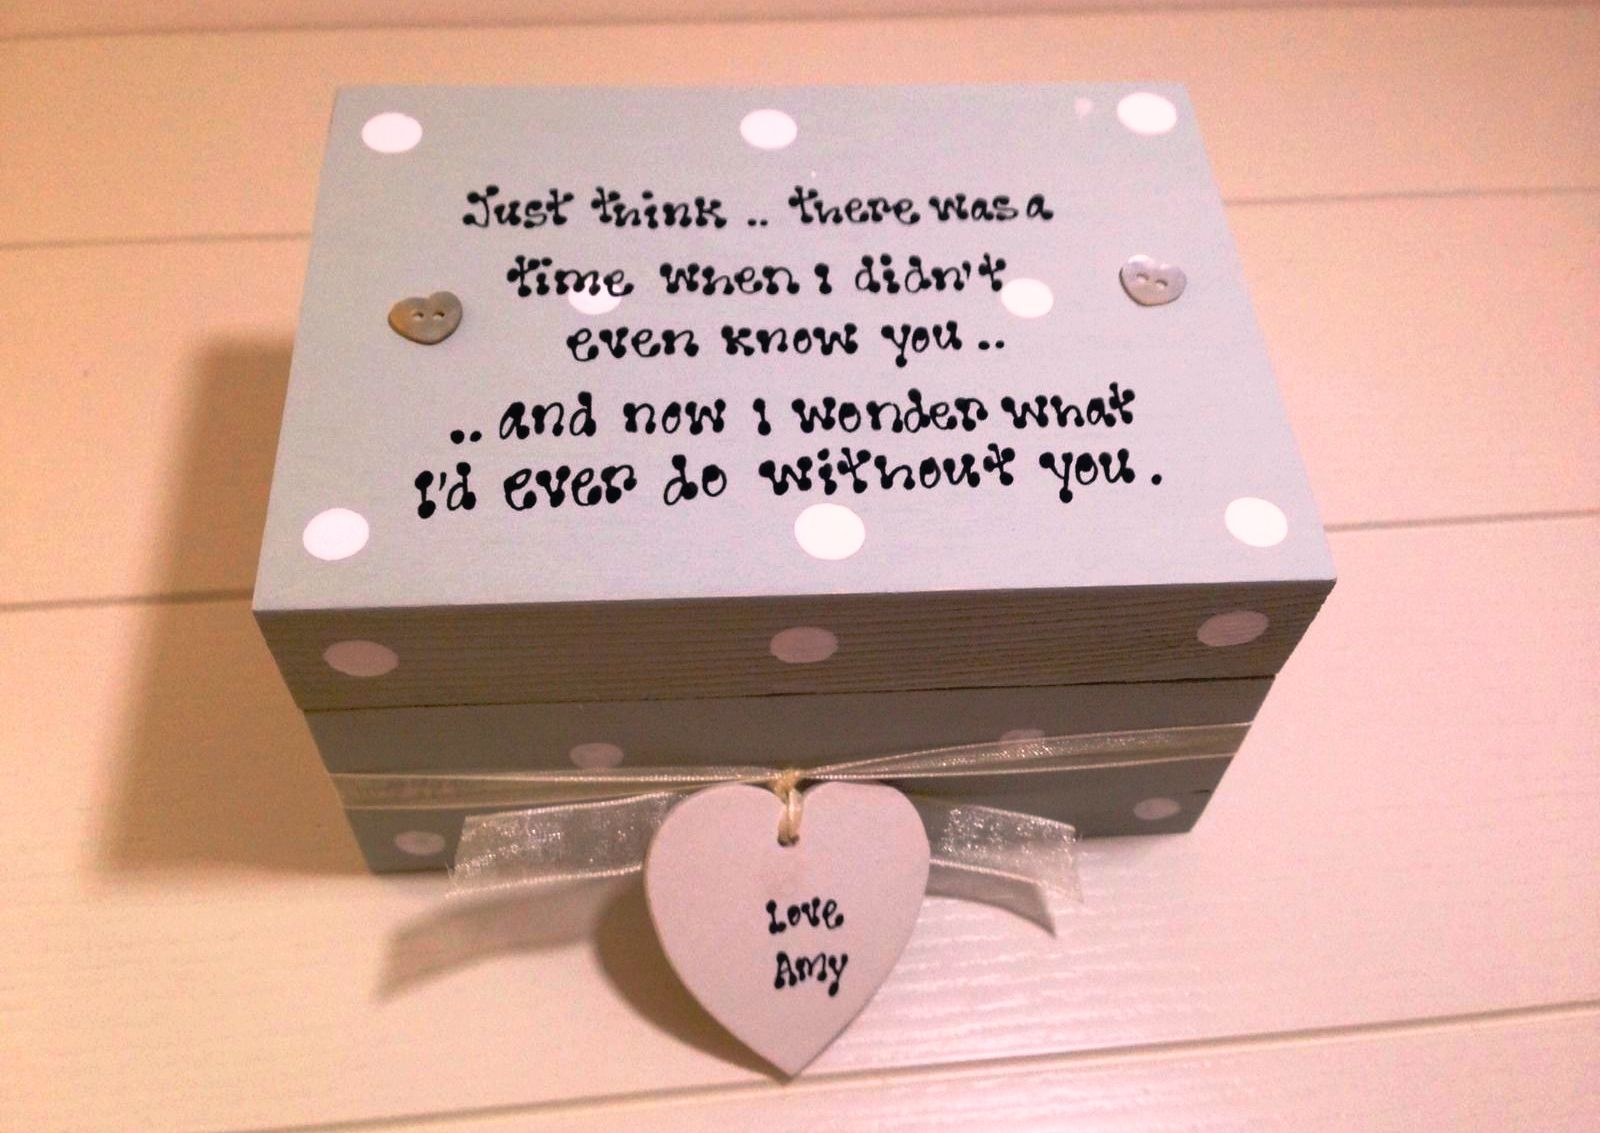 Usable sentimental gifts that celebrate Freindships.